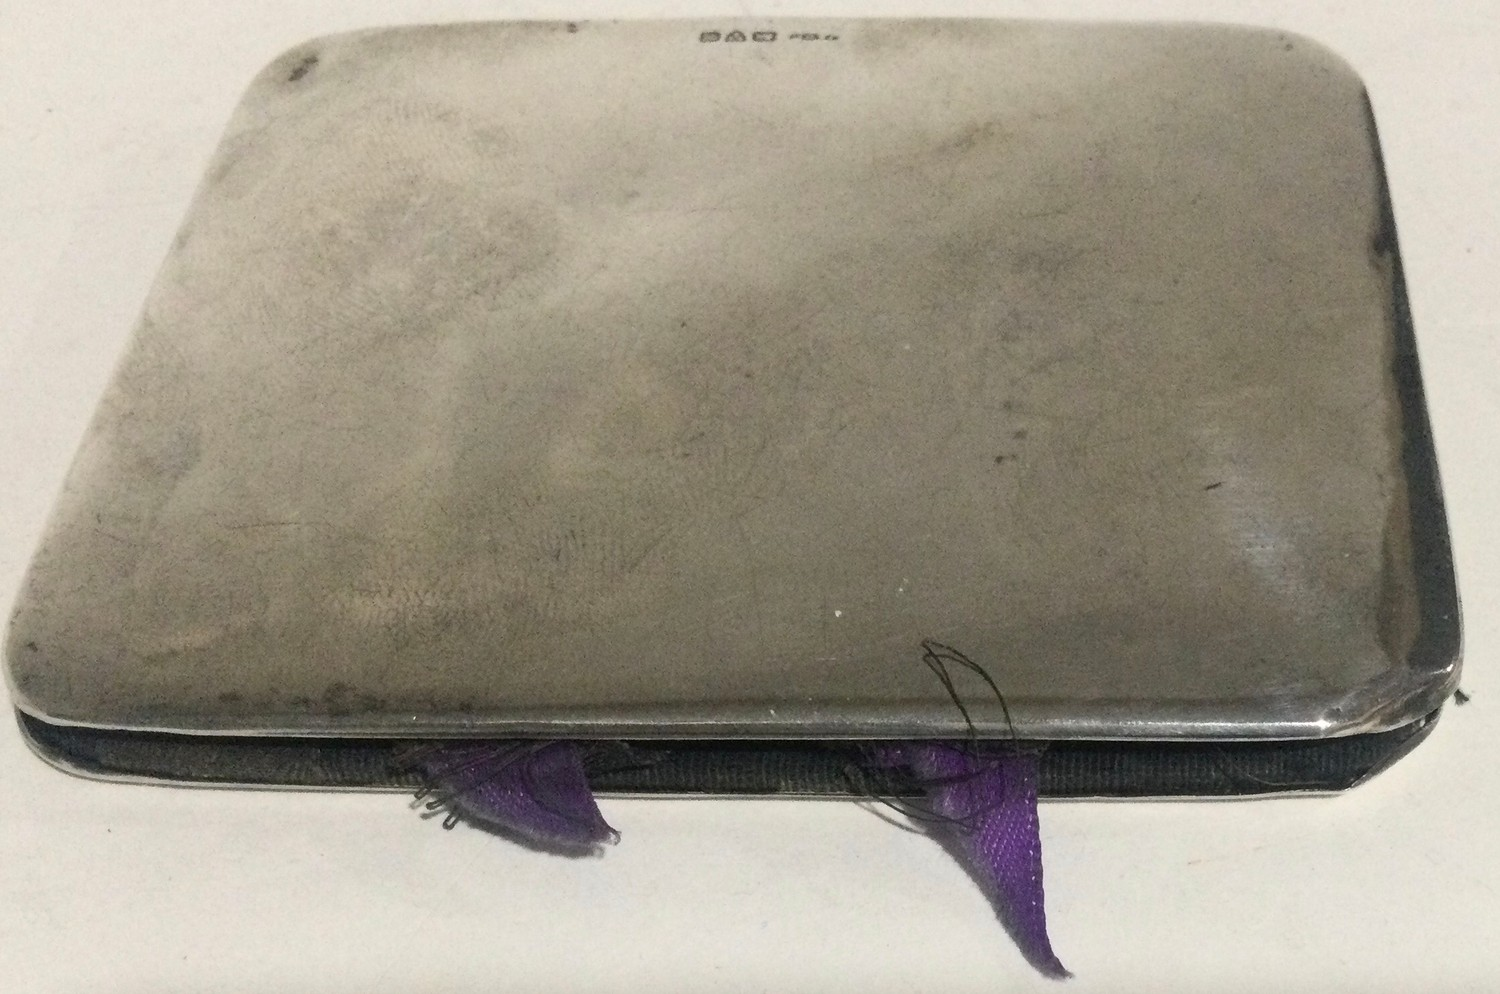 Silver money wallet or card wallet Chester 1917 - Image 5 of 5